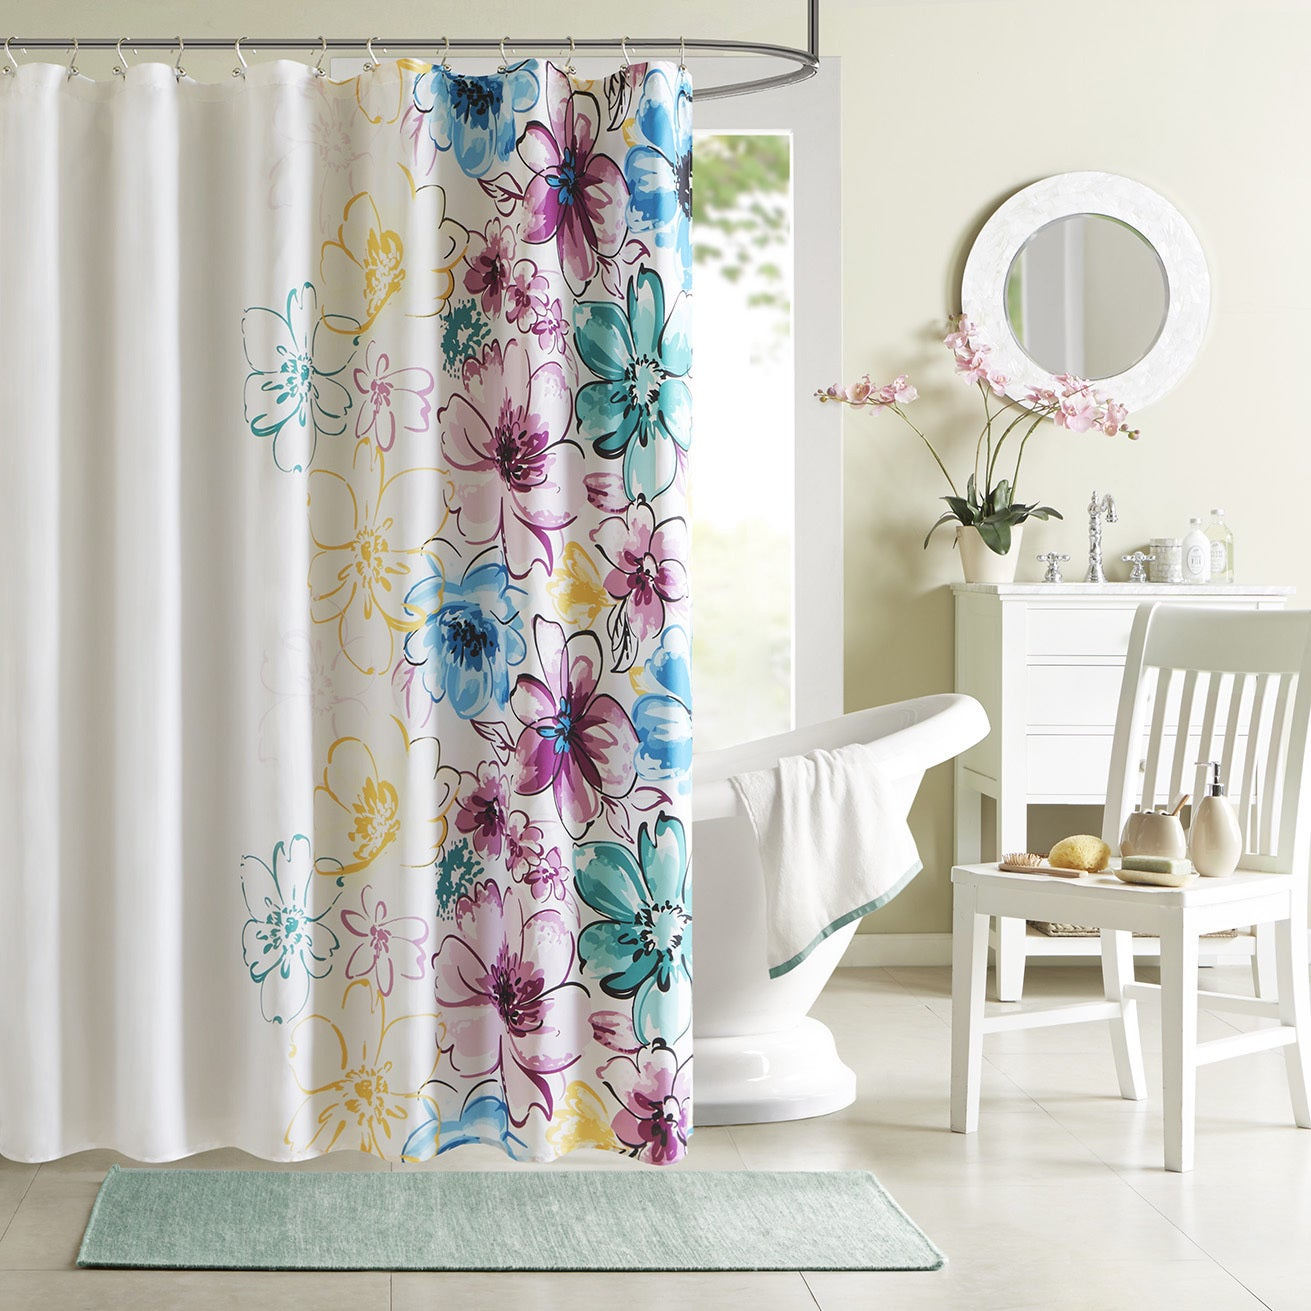 Intelligent Design Cassidy Floral Shower Curtain - Free Shipping On Orders  Over $45 - Overstock.com - 16339625